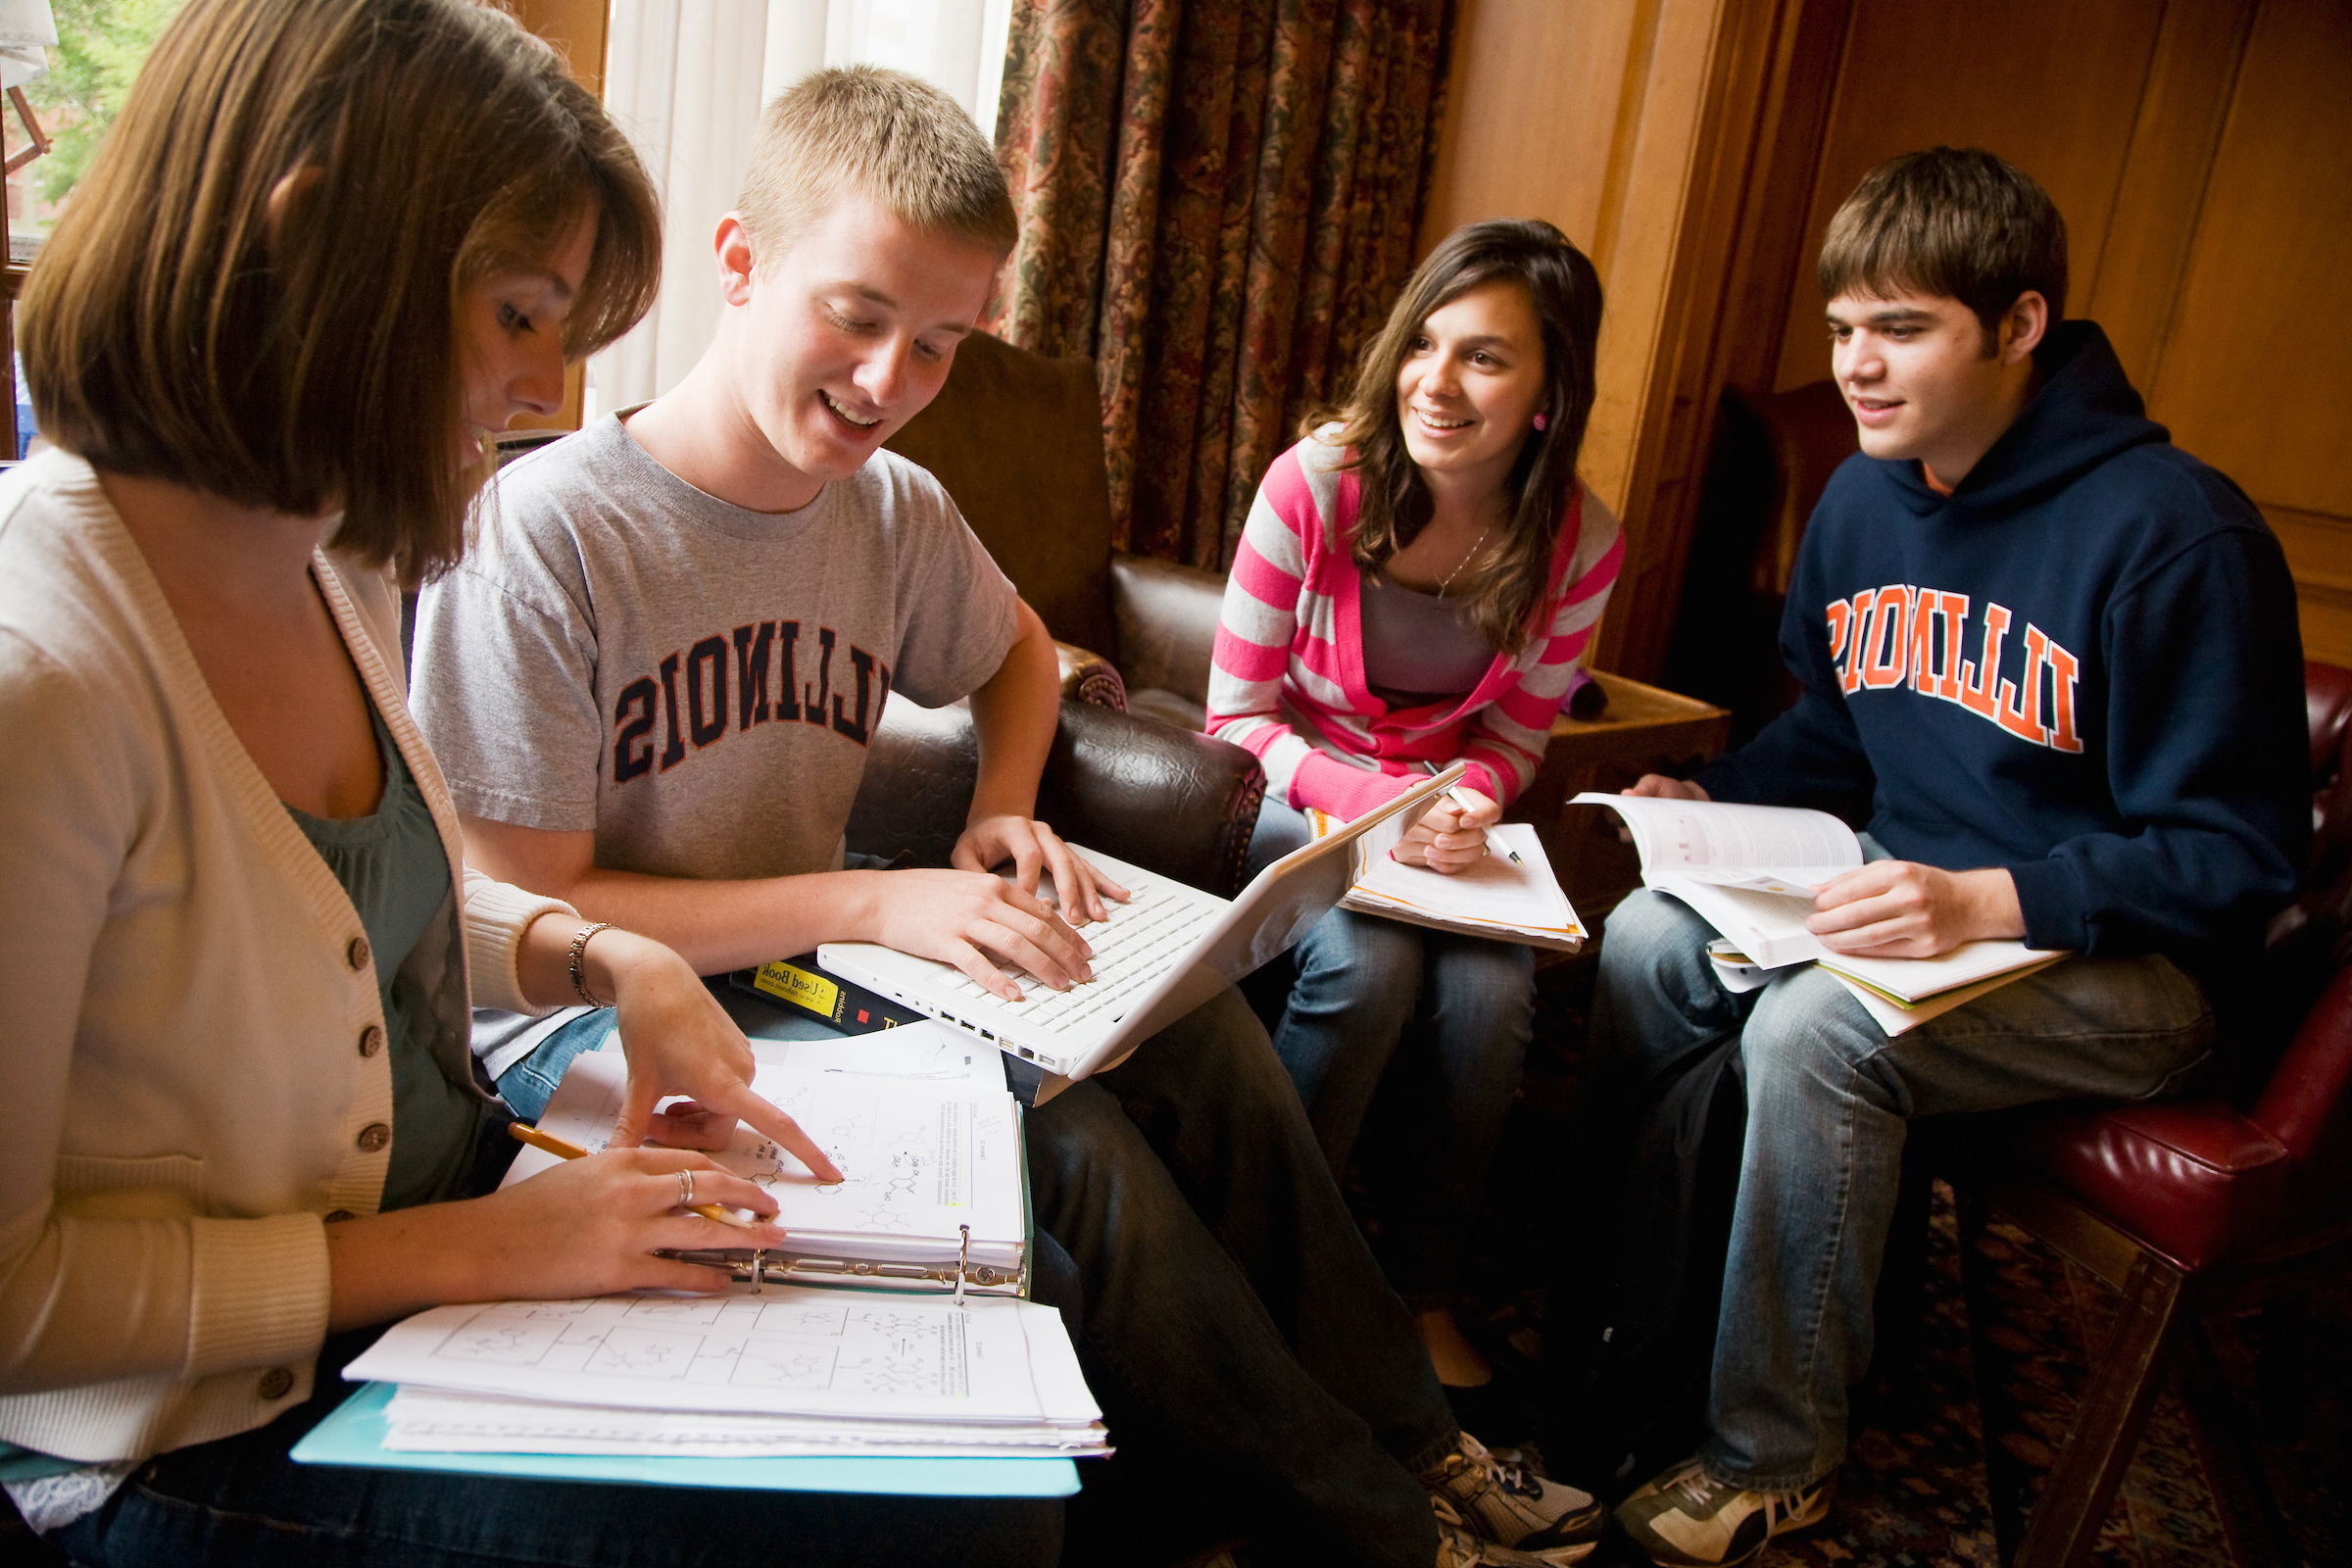 Group of students studying in the South Lounge of the Illini Union.